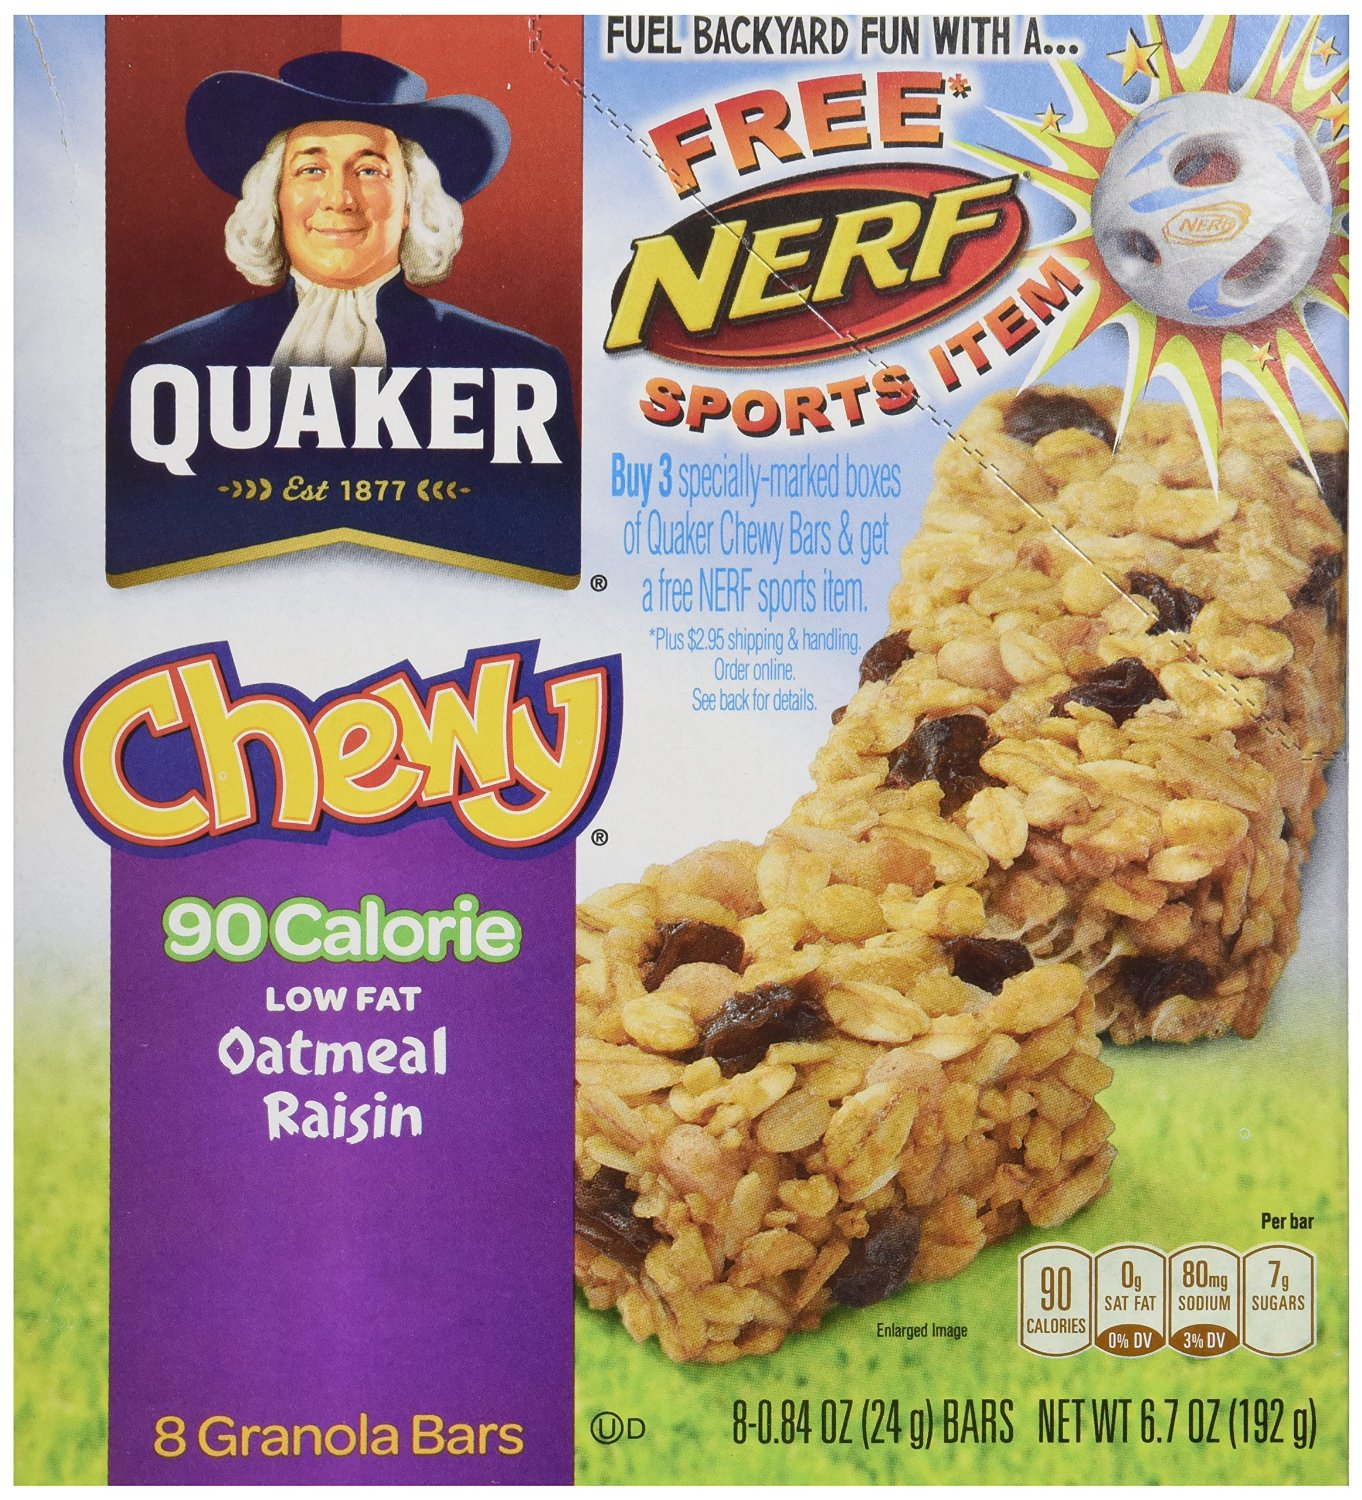 Quaker Oatmeal Raisin Chewy Granola Bars 90 Calories, 8-Count 0.84 Ounce Bars, (Pack of 6)